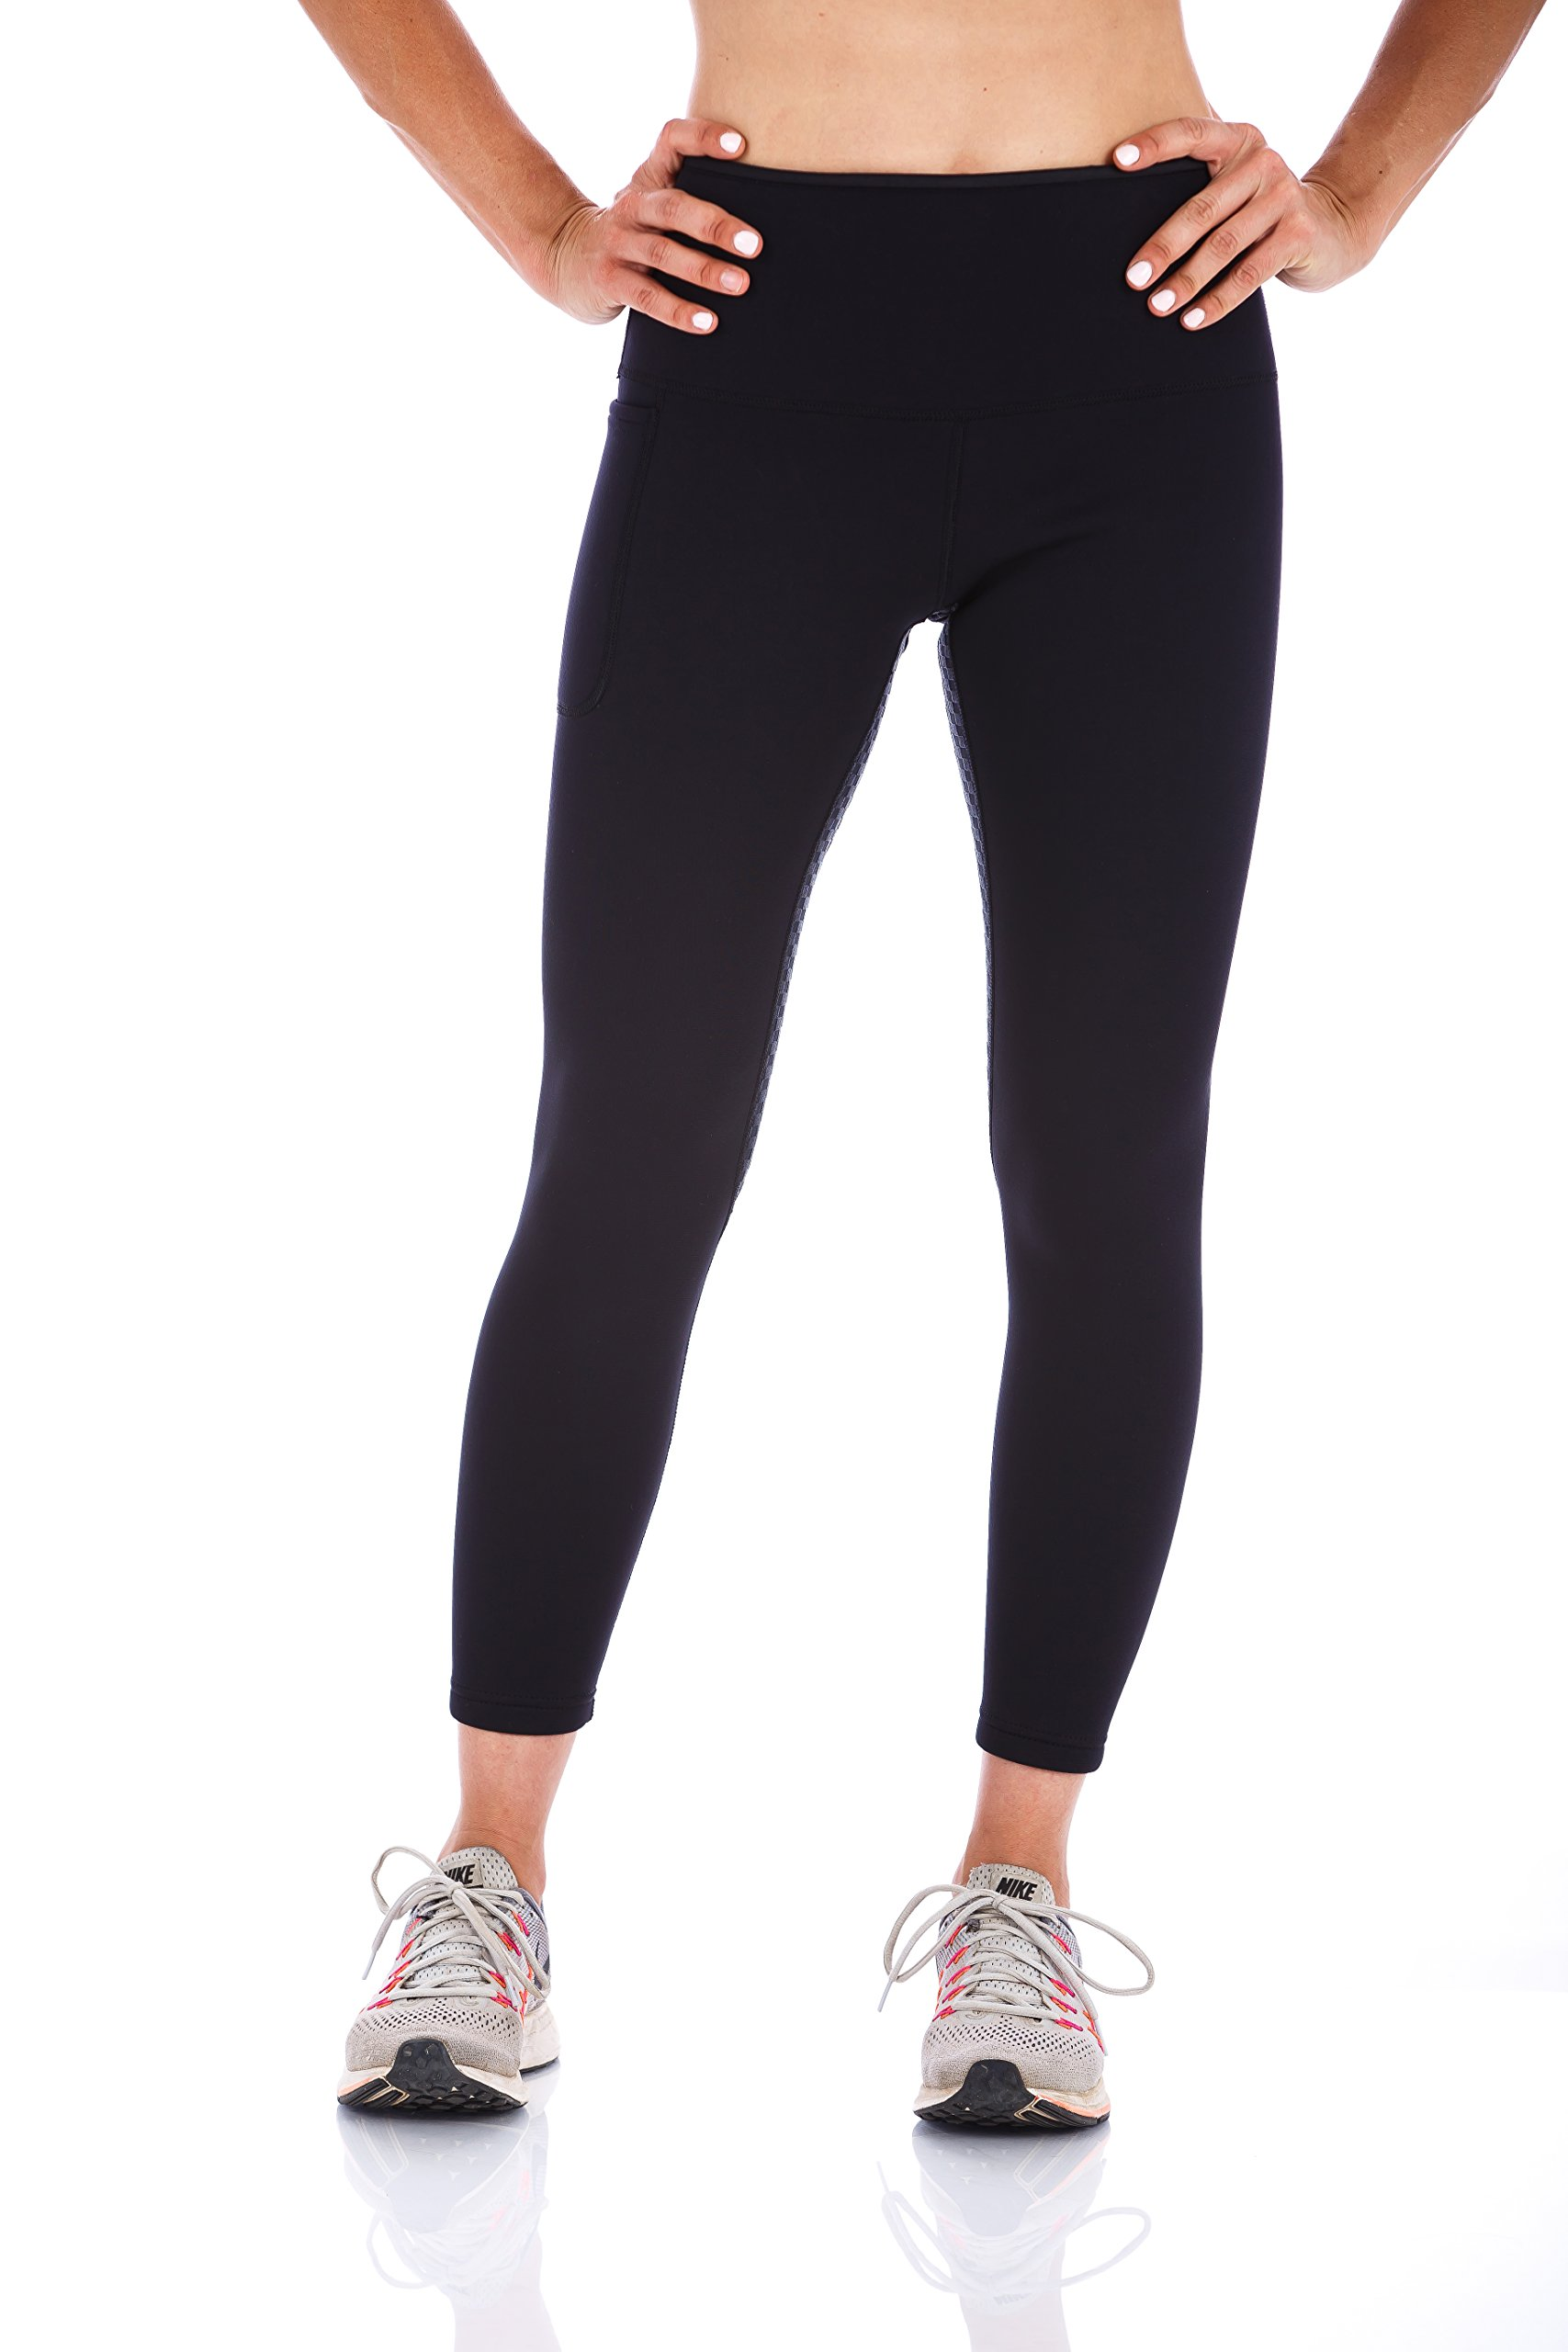 Kutting Weight Sauna Suit Weight Loss Neoprene Women's Compression Tights (Black Tights, S)